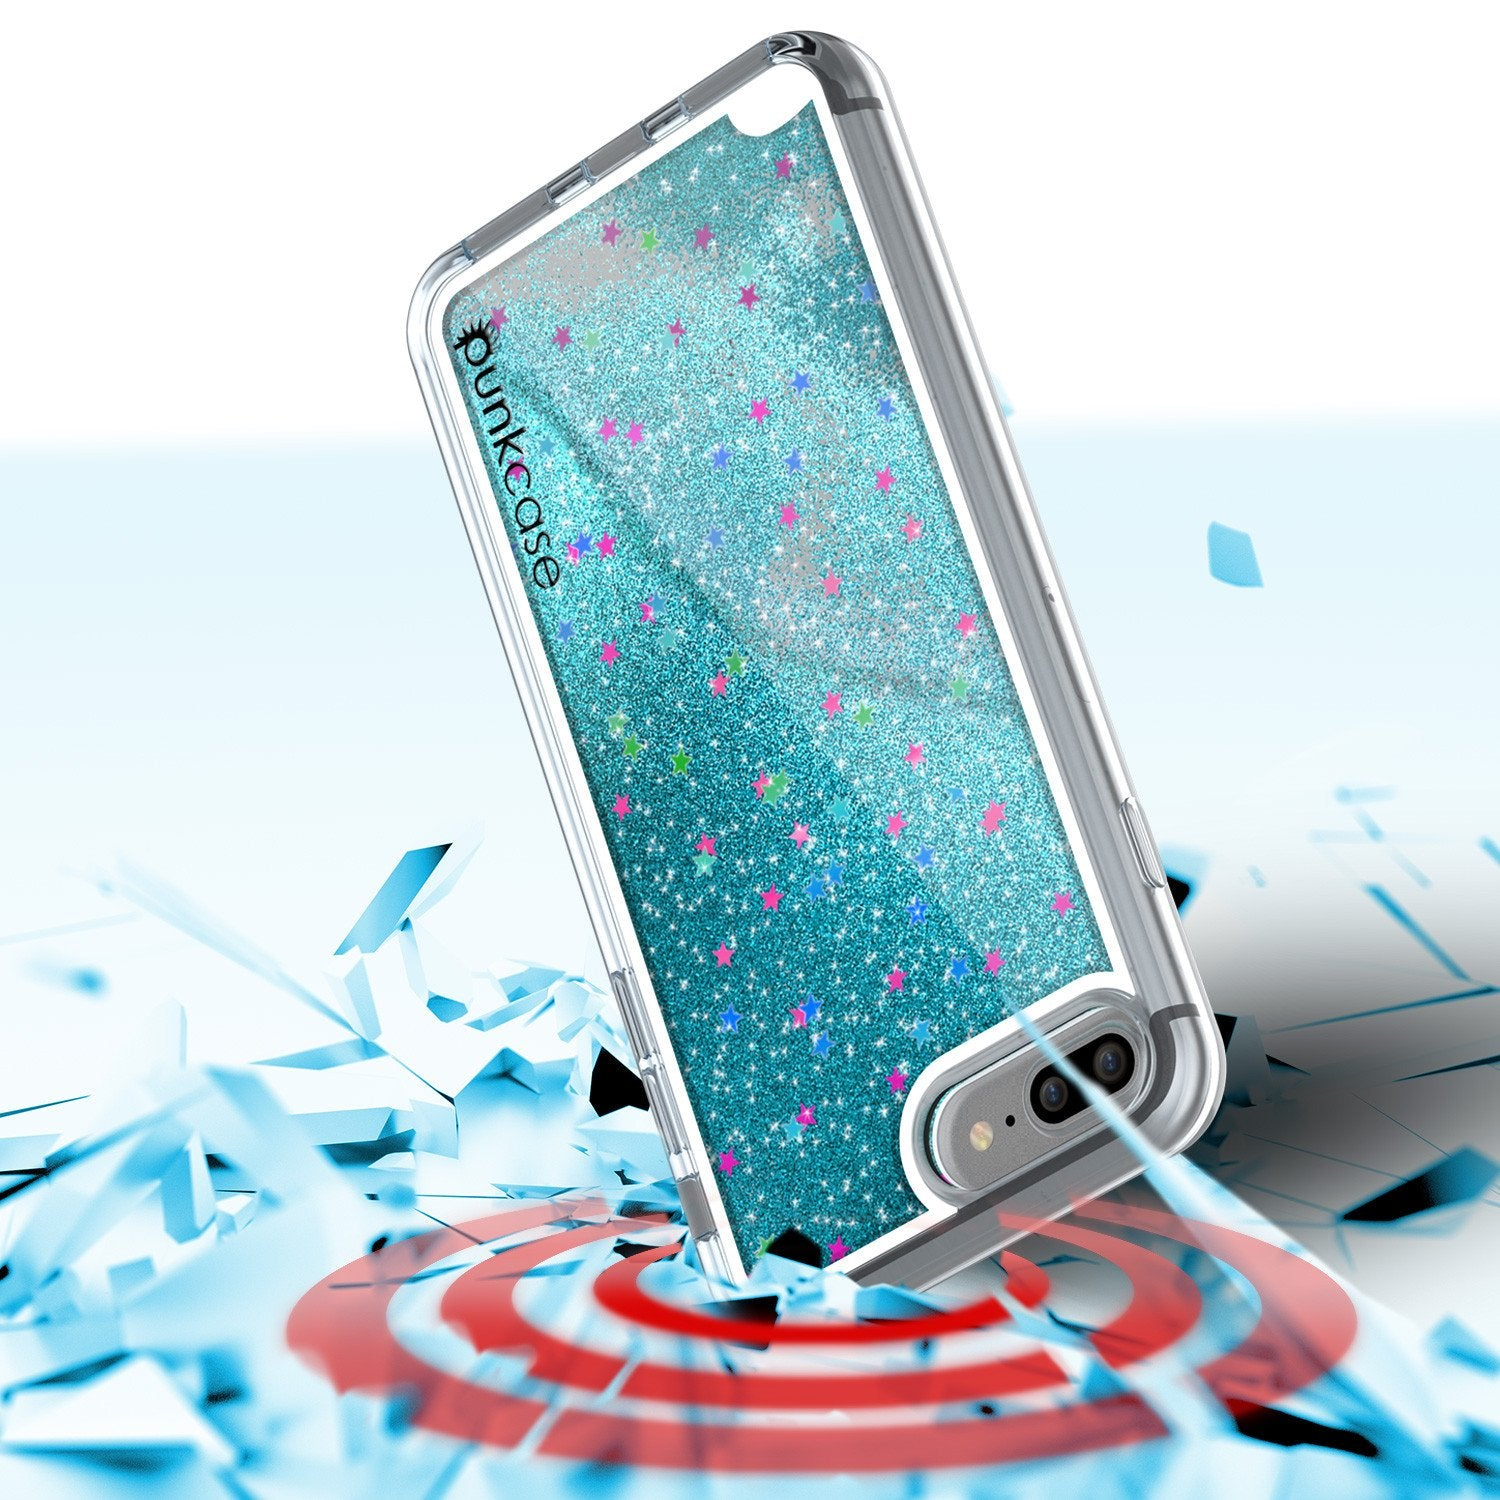 iPhone 8+ Plus Case, PunkCase LIQUID Teal Series, Protective Dual Layer Floating Glitter Cover